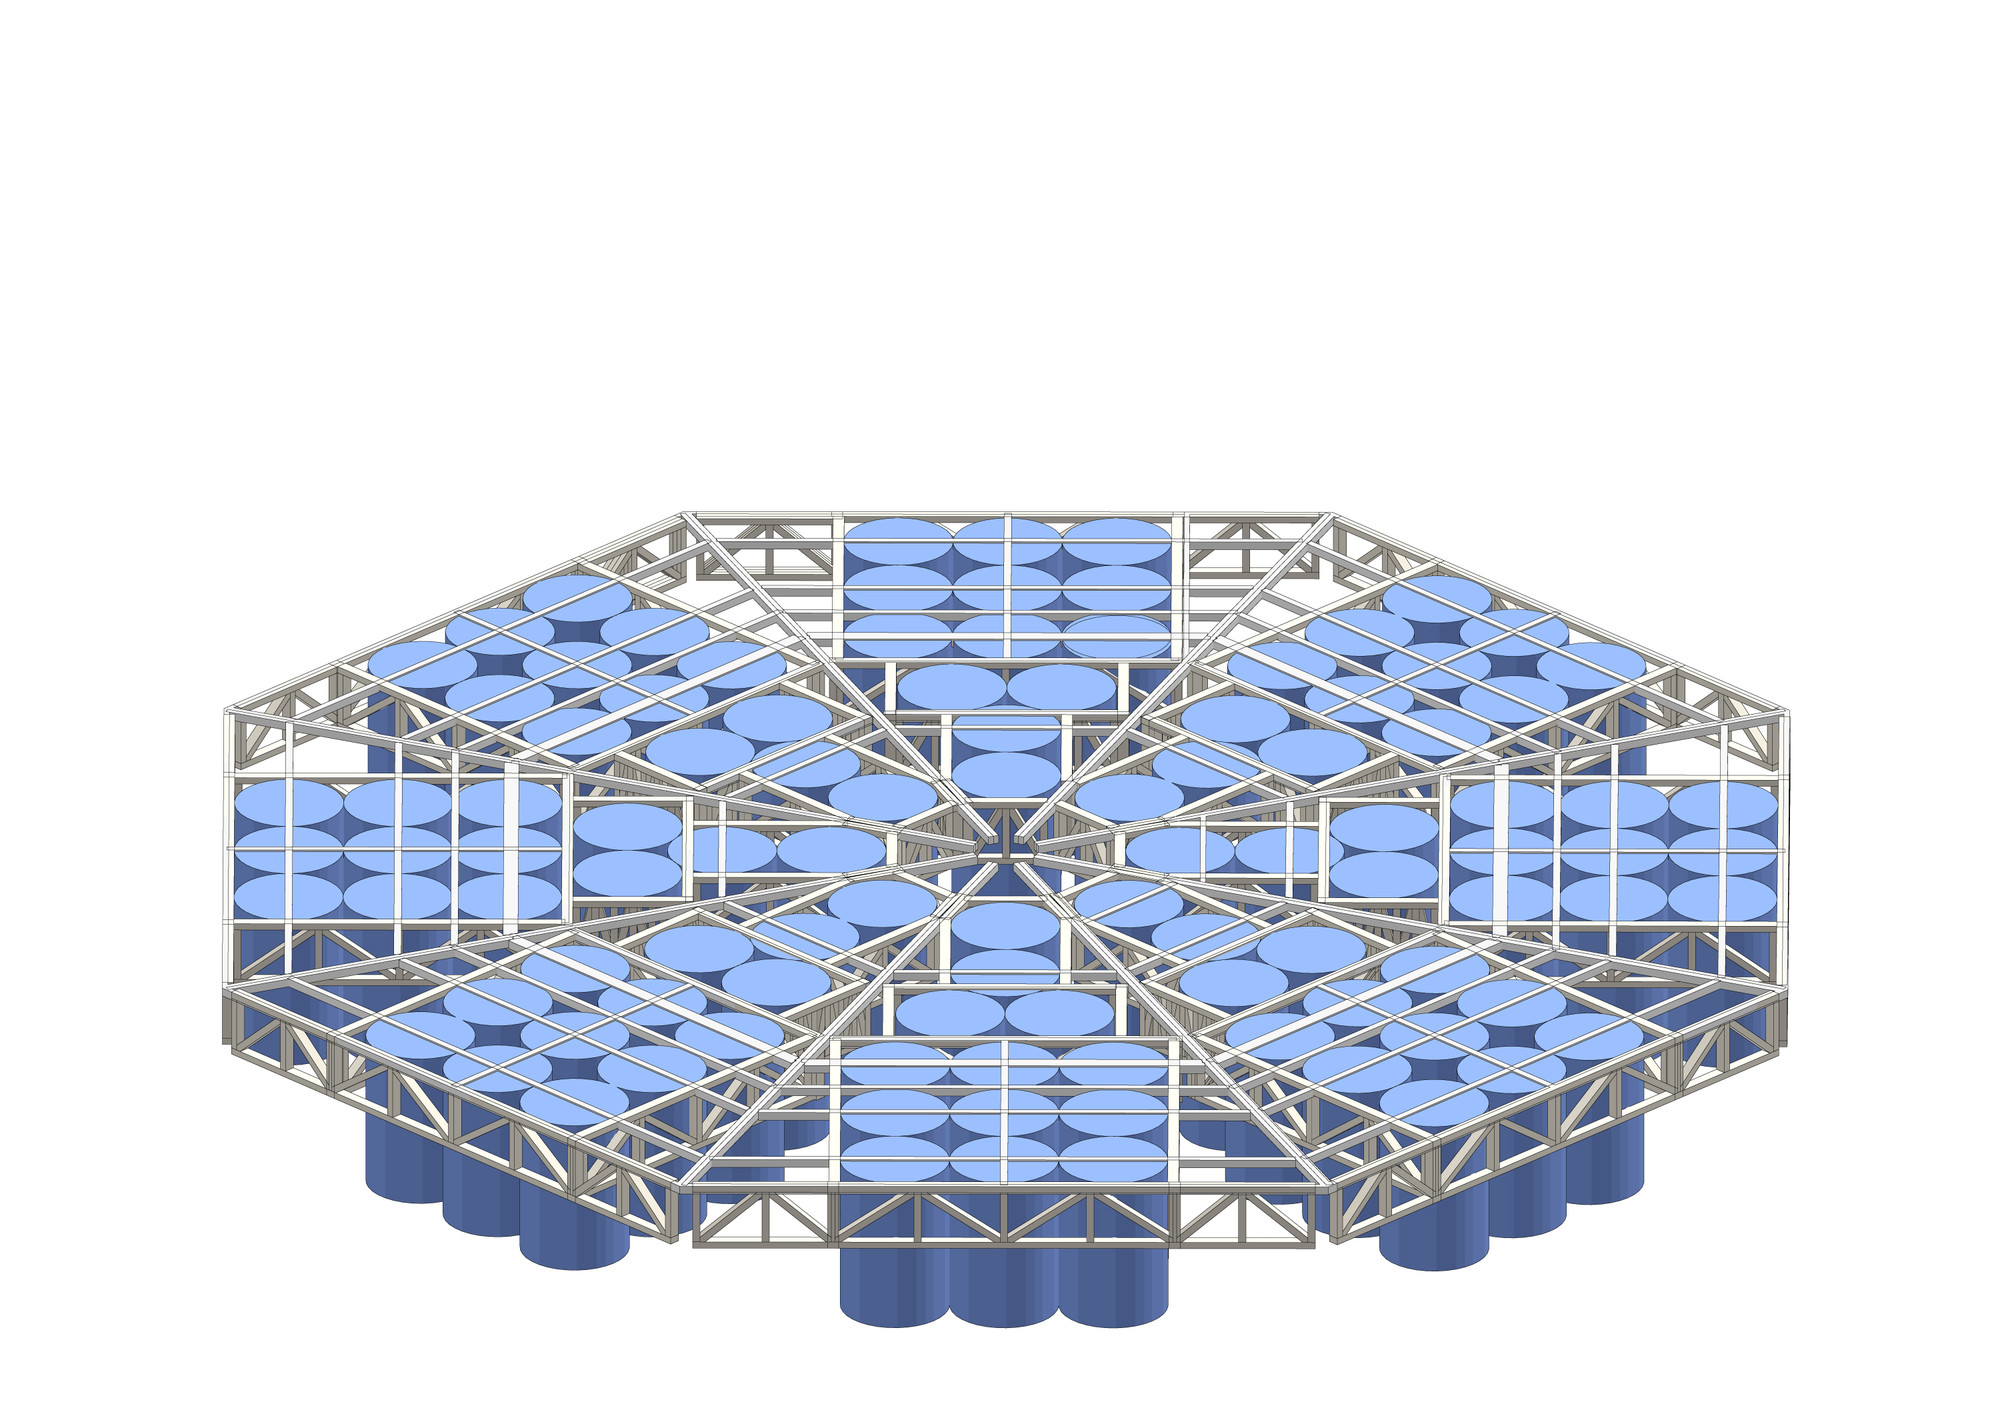 hight resolution of  jellyfish barge provides sustainable source of food and water construction diagram step